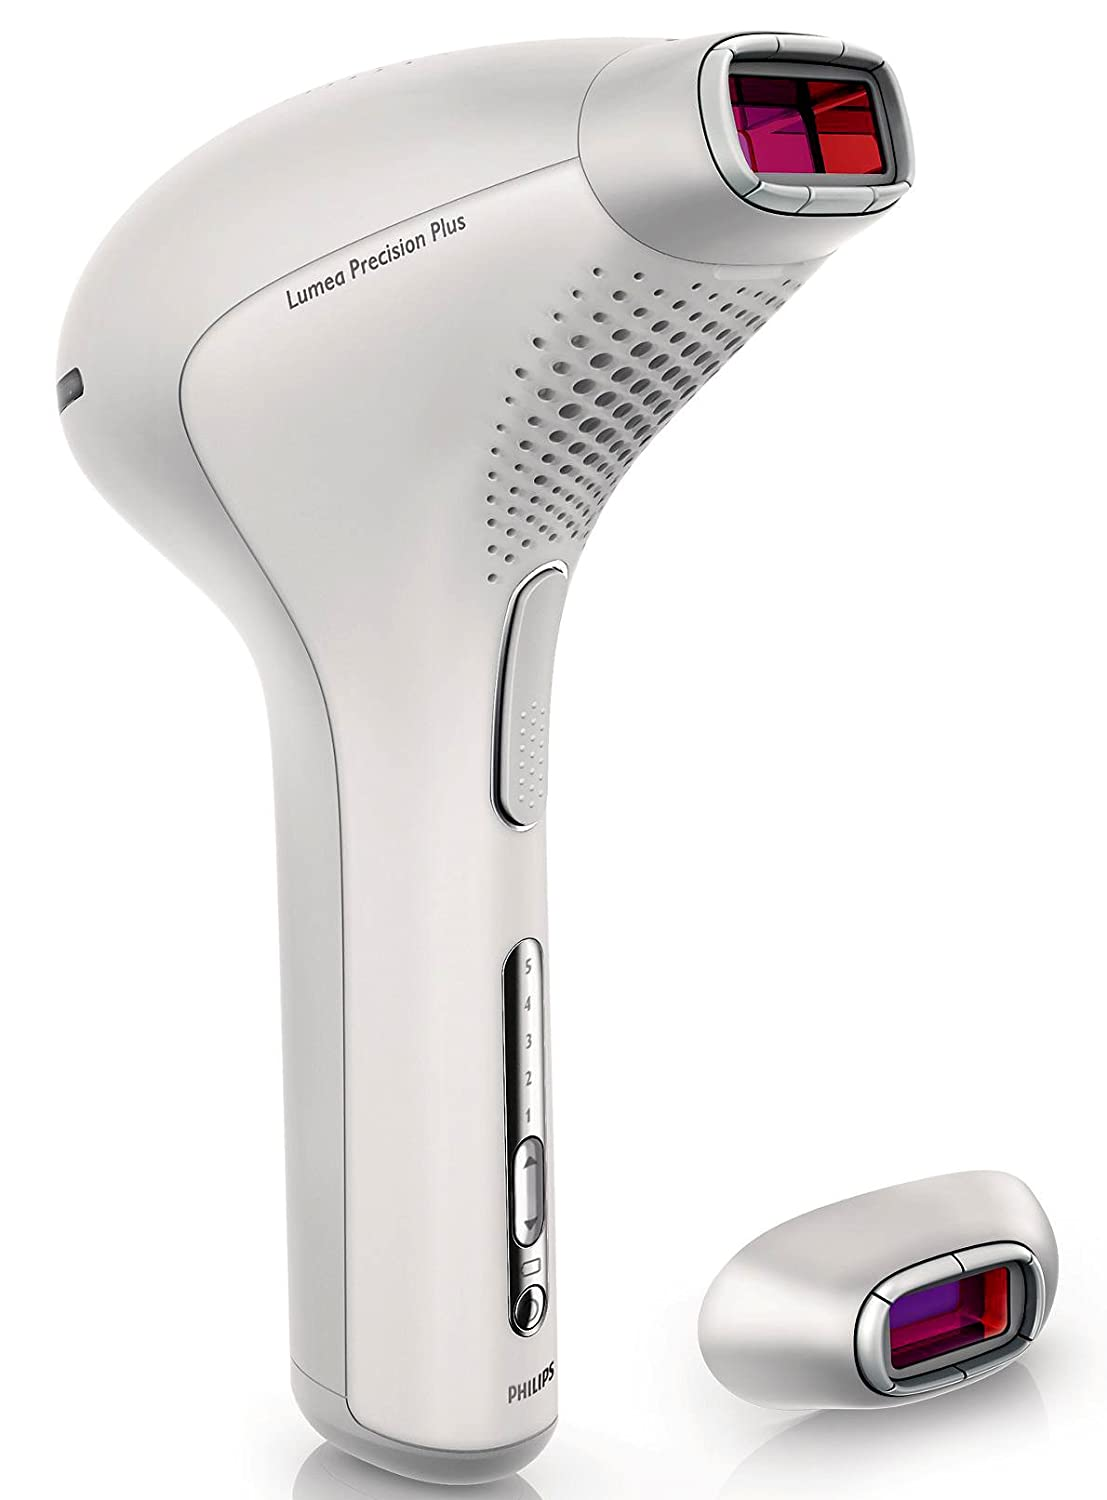 Philips Lumea Precision Plus SC2003/11